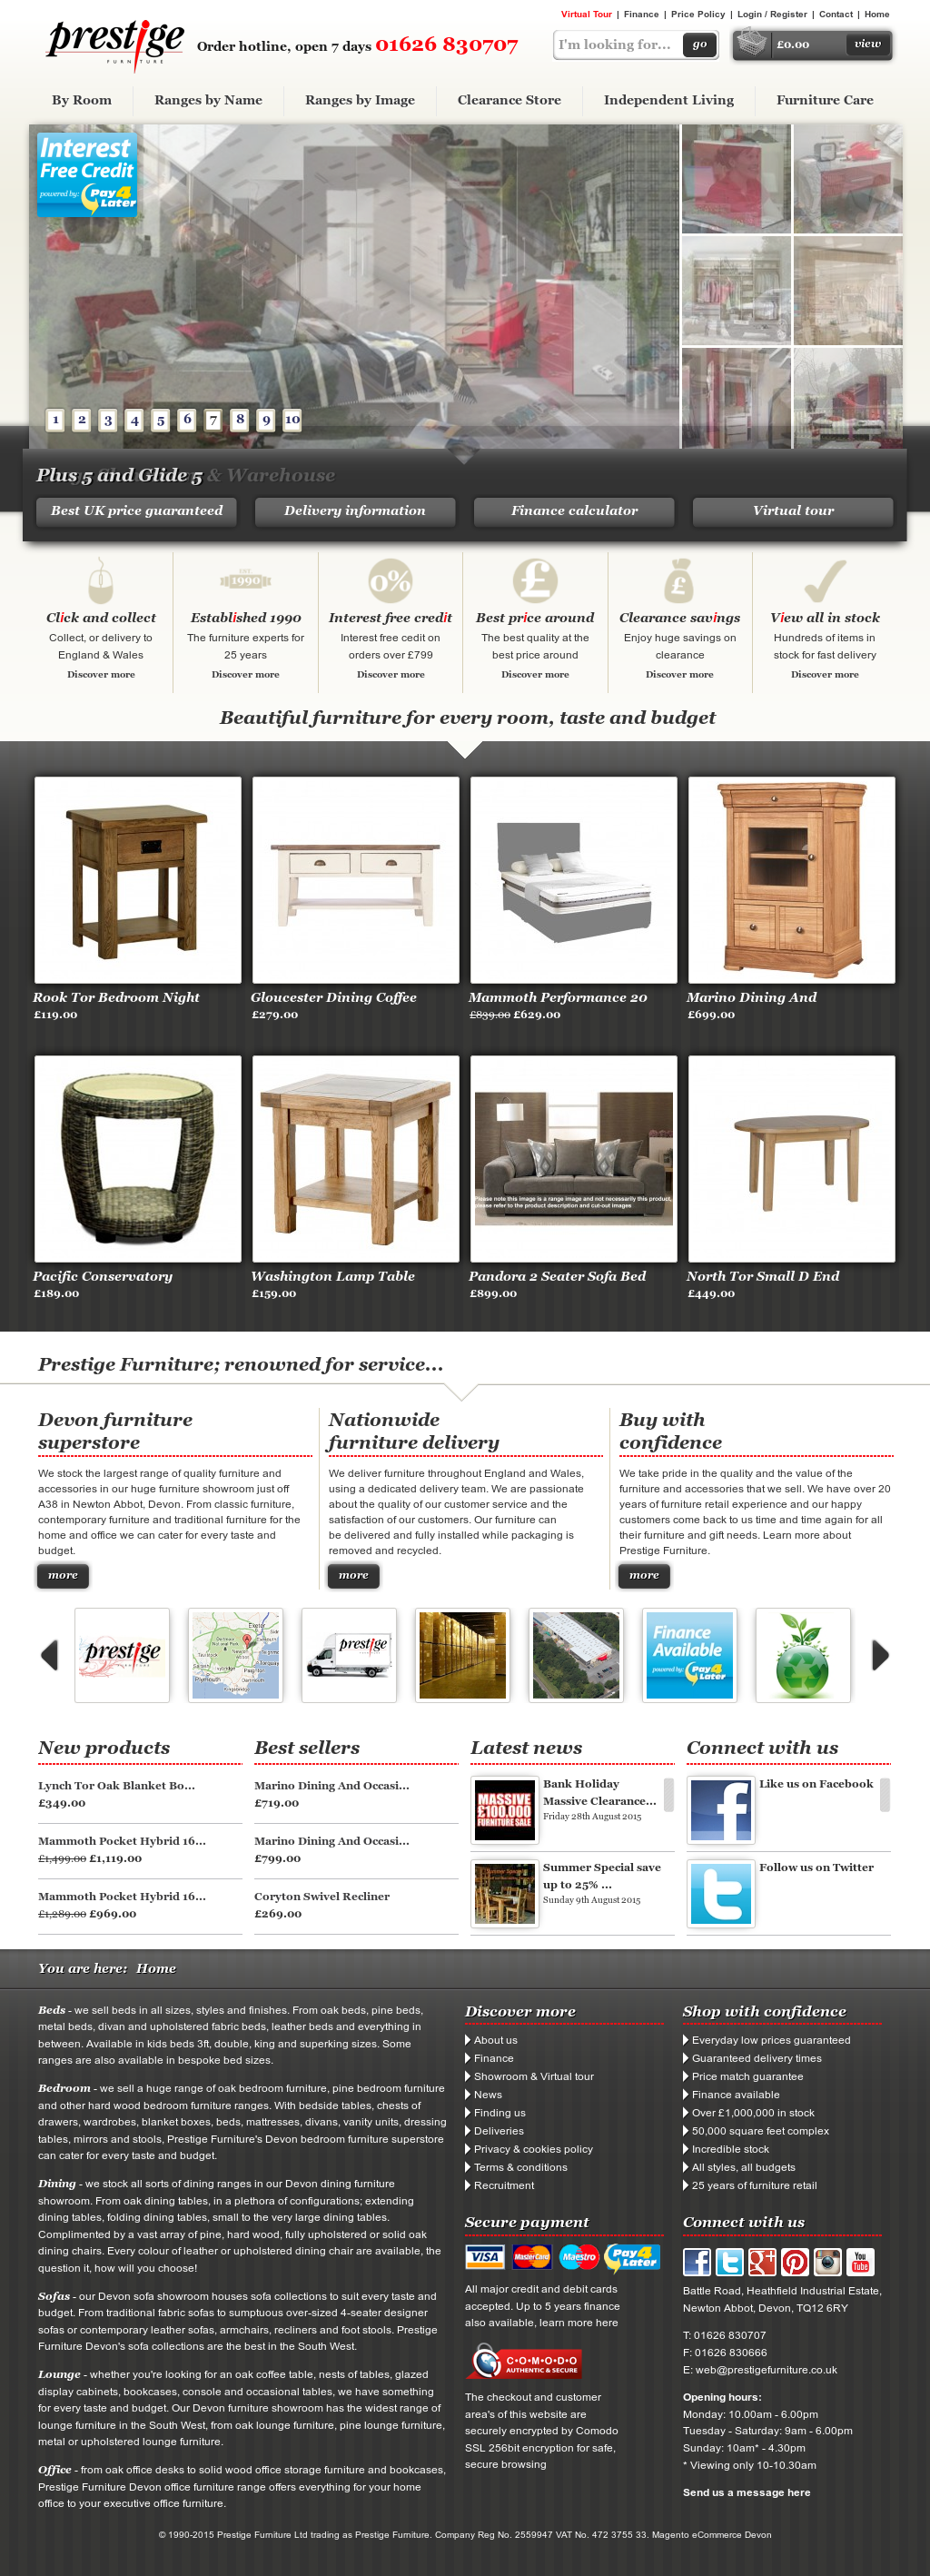 Prestige Furniture Compeors Revenue And Employees